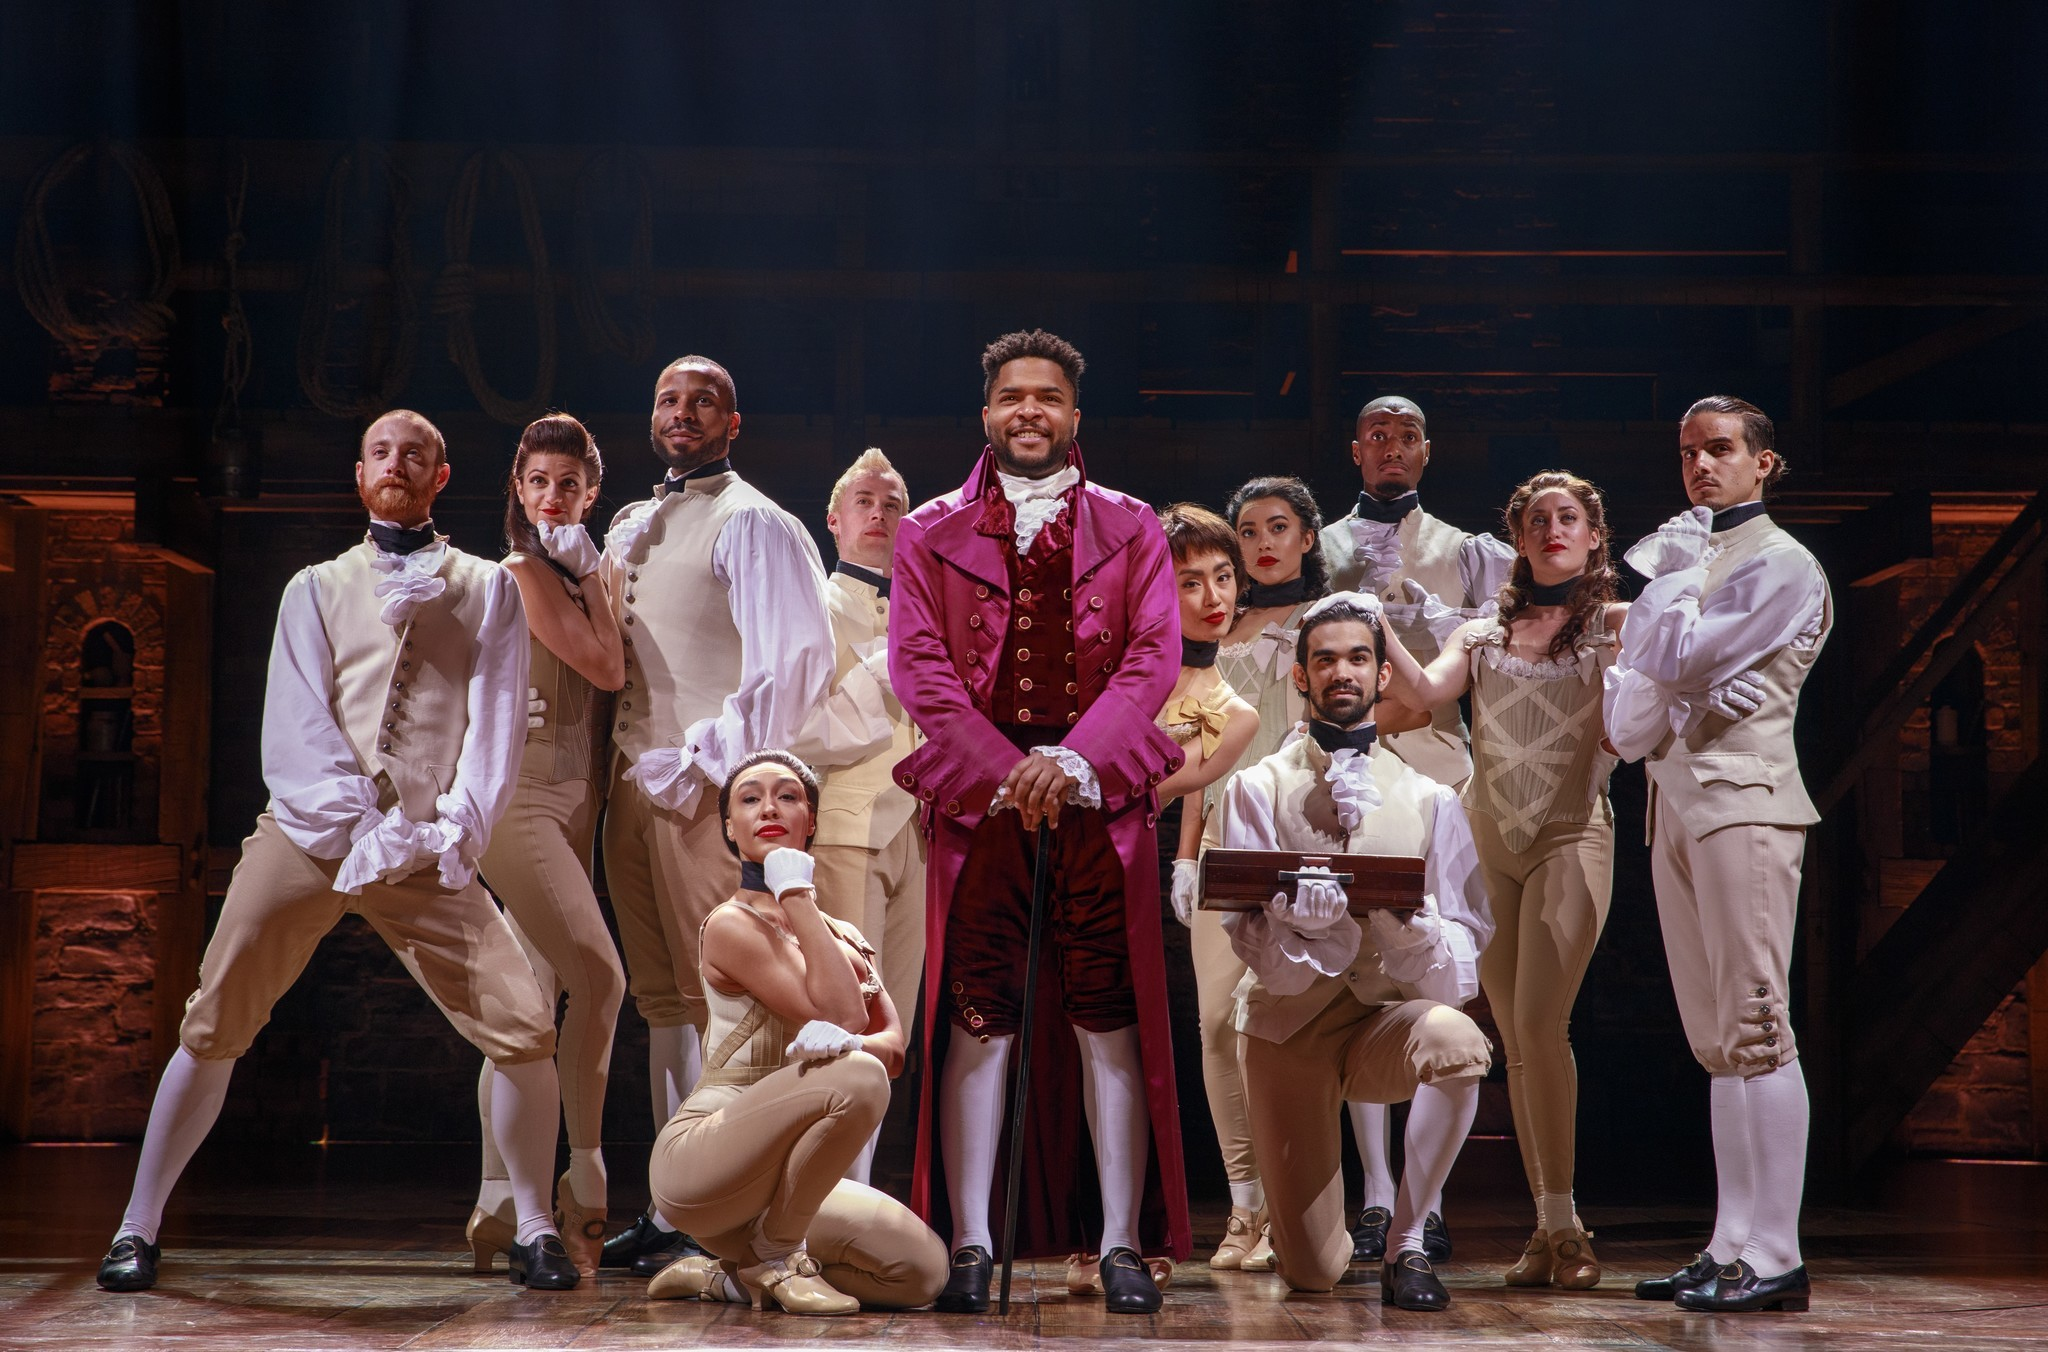 Here comes 'Hamilton': What you need know about the musical coming to Baltimore that took over the world